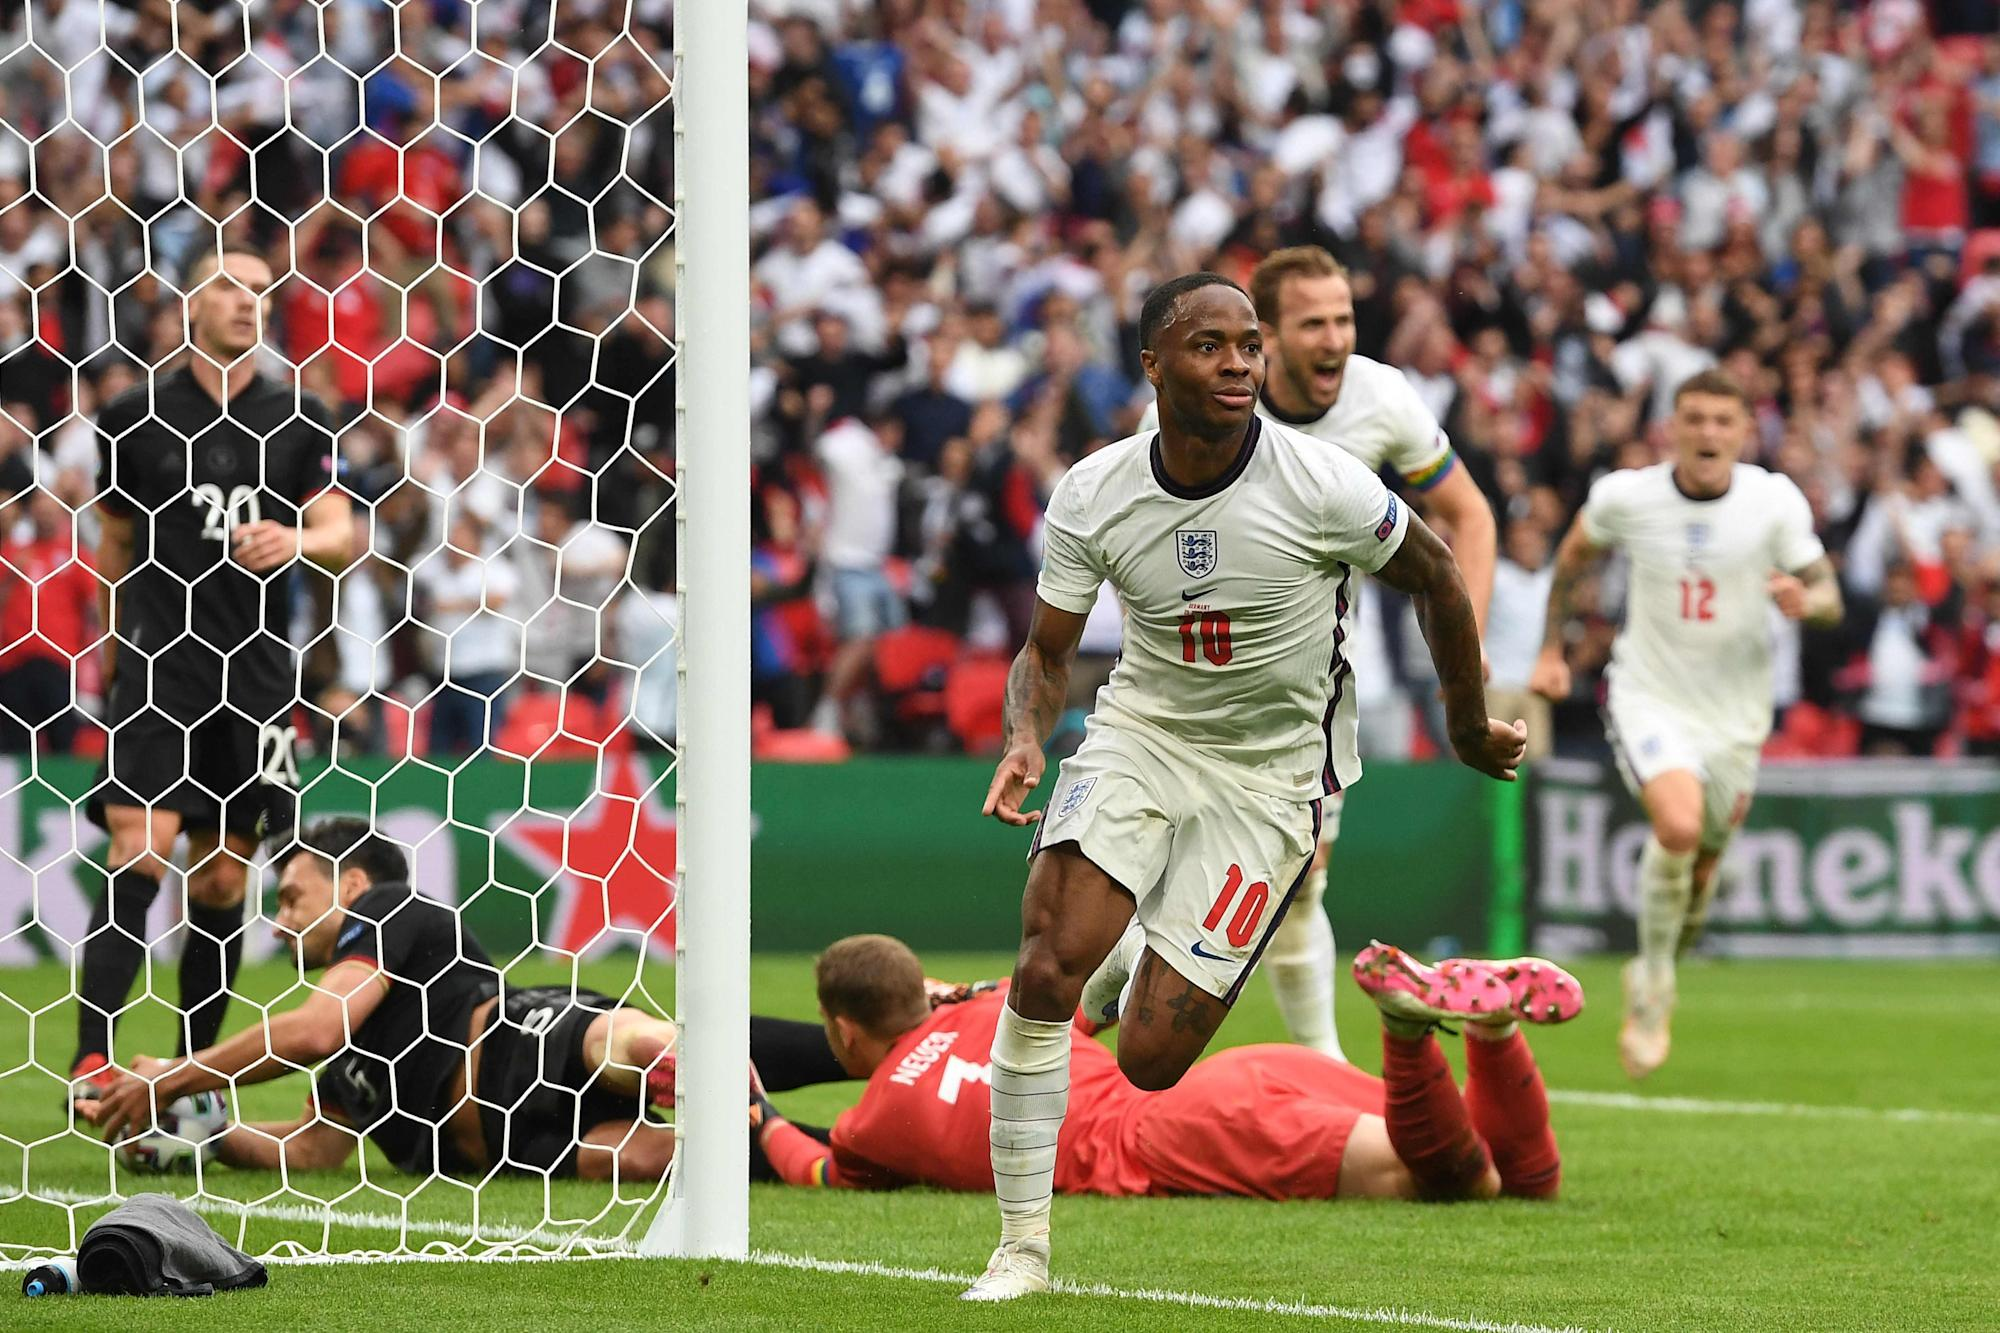 England trio Kyle Walker, Harry Maguire and Raheem Sterling named in Euro 2020 team of the tournament